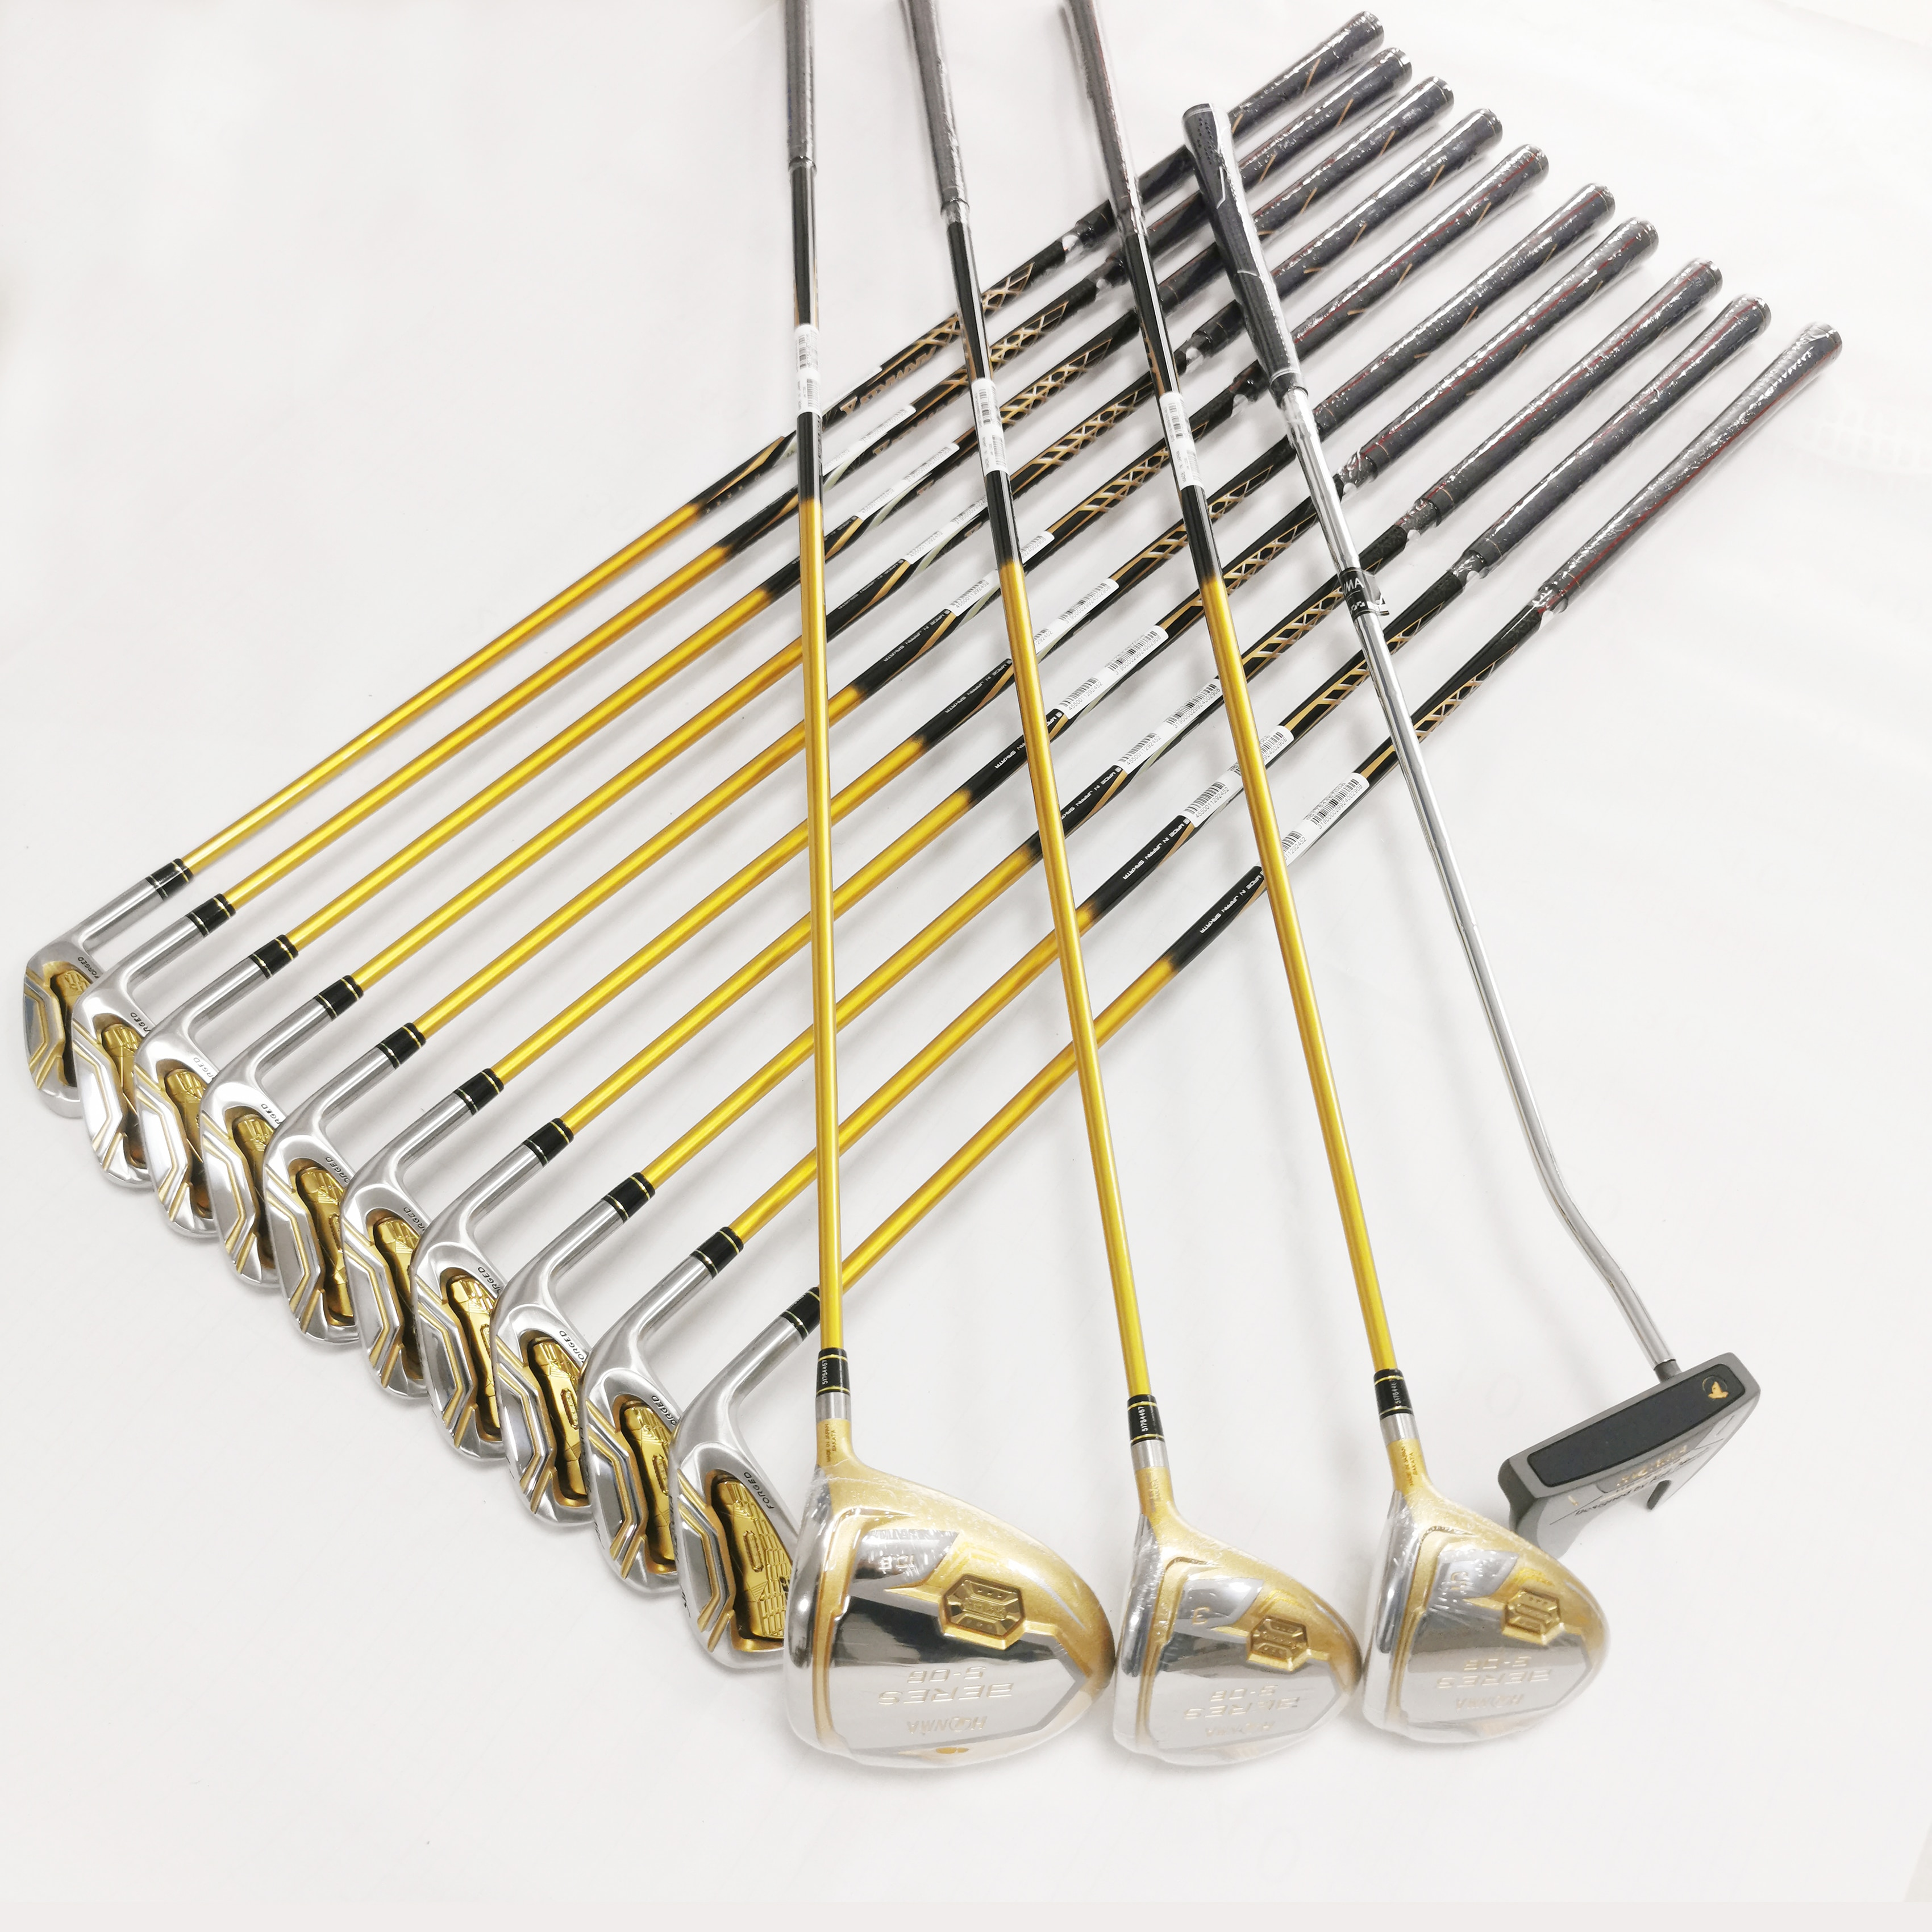 New Men Golf Clubs Full Set Driver Fairway Irons Putter Complete Carbon or Steel Shaft Set No Bag Free Shipping